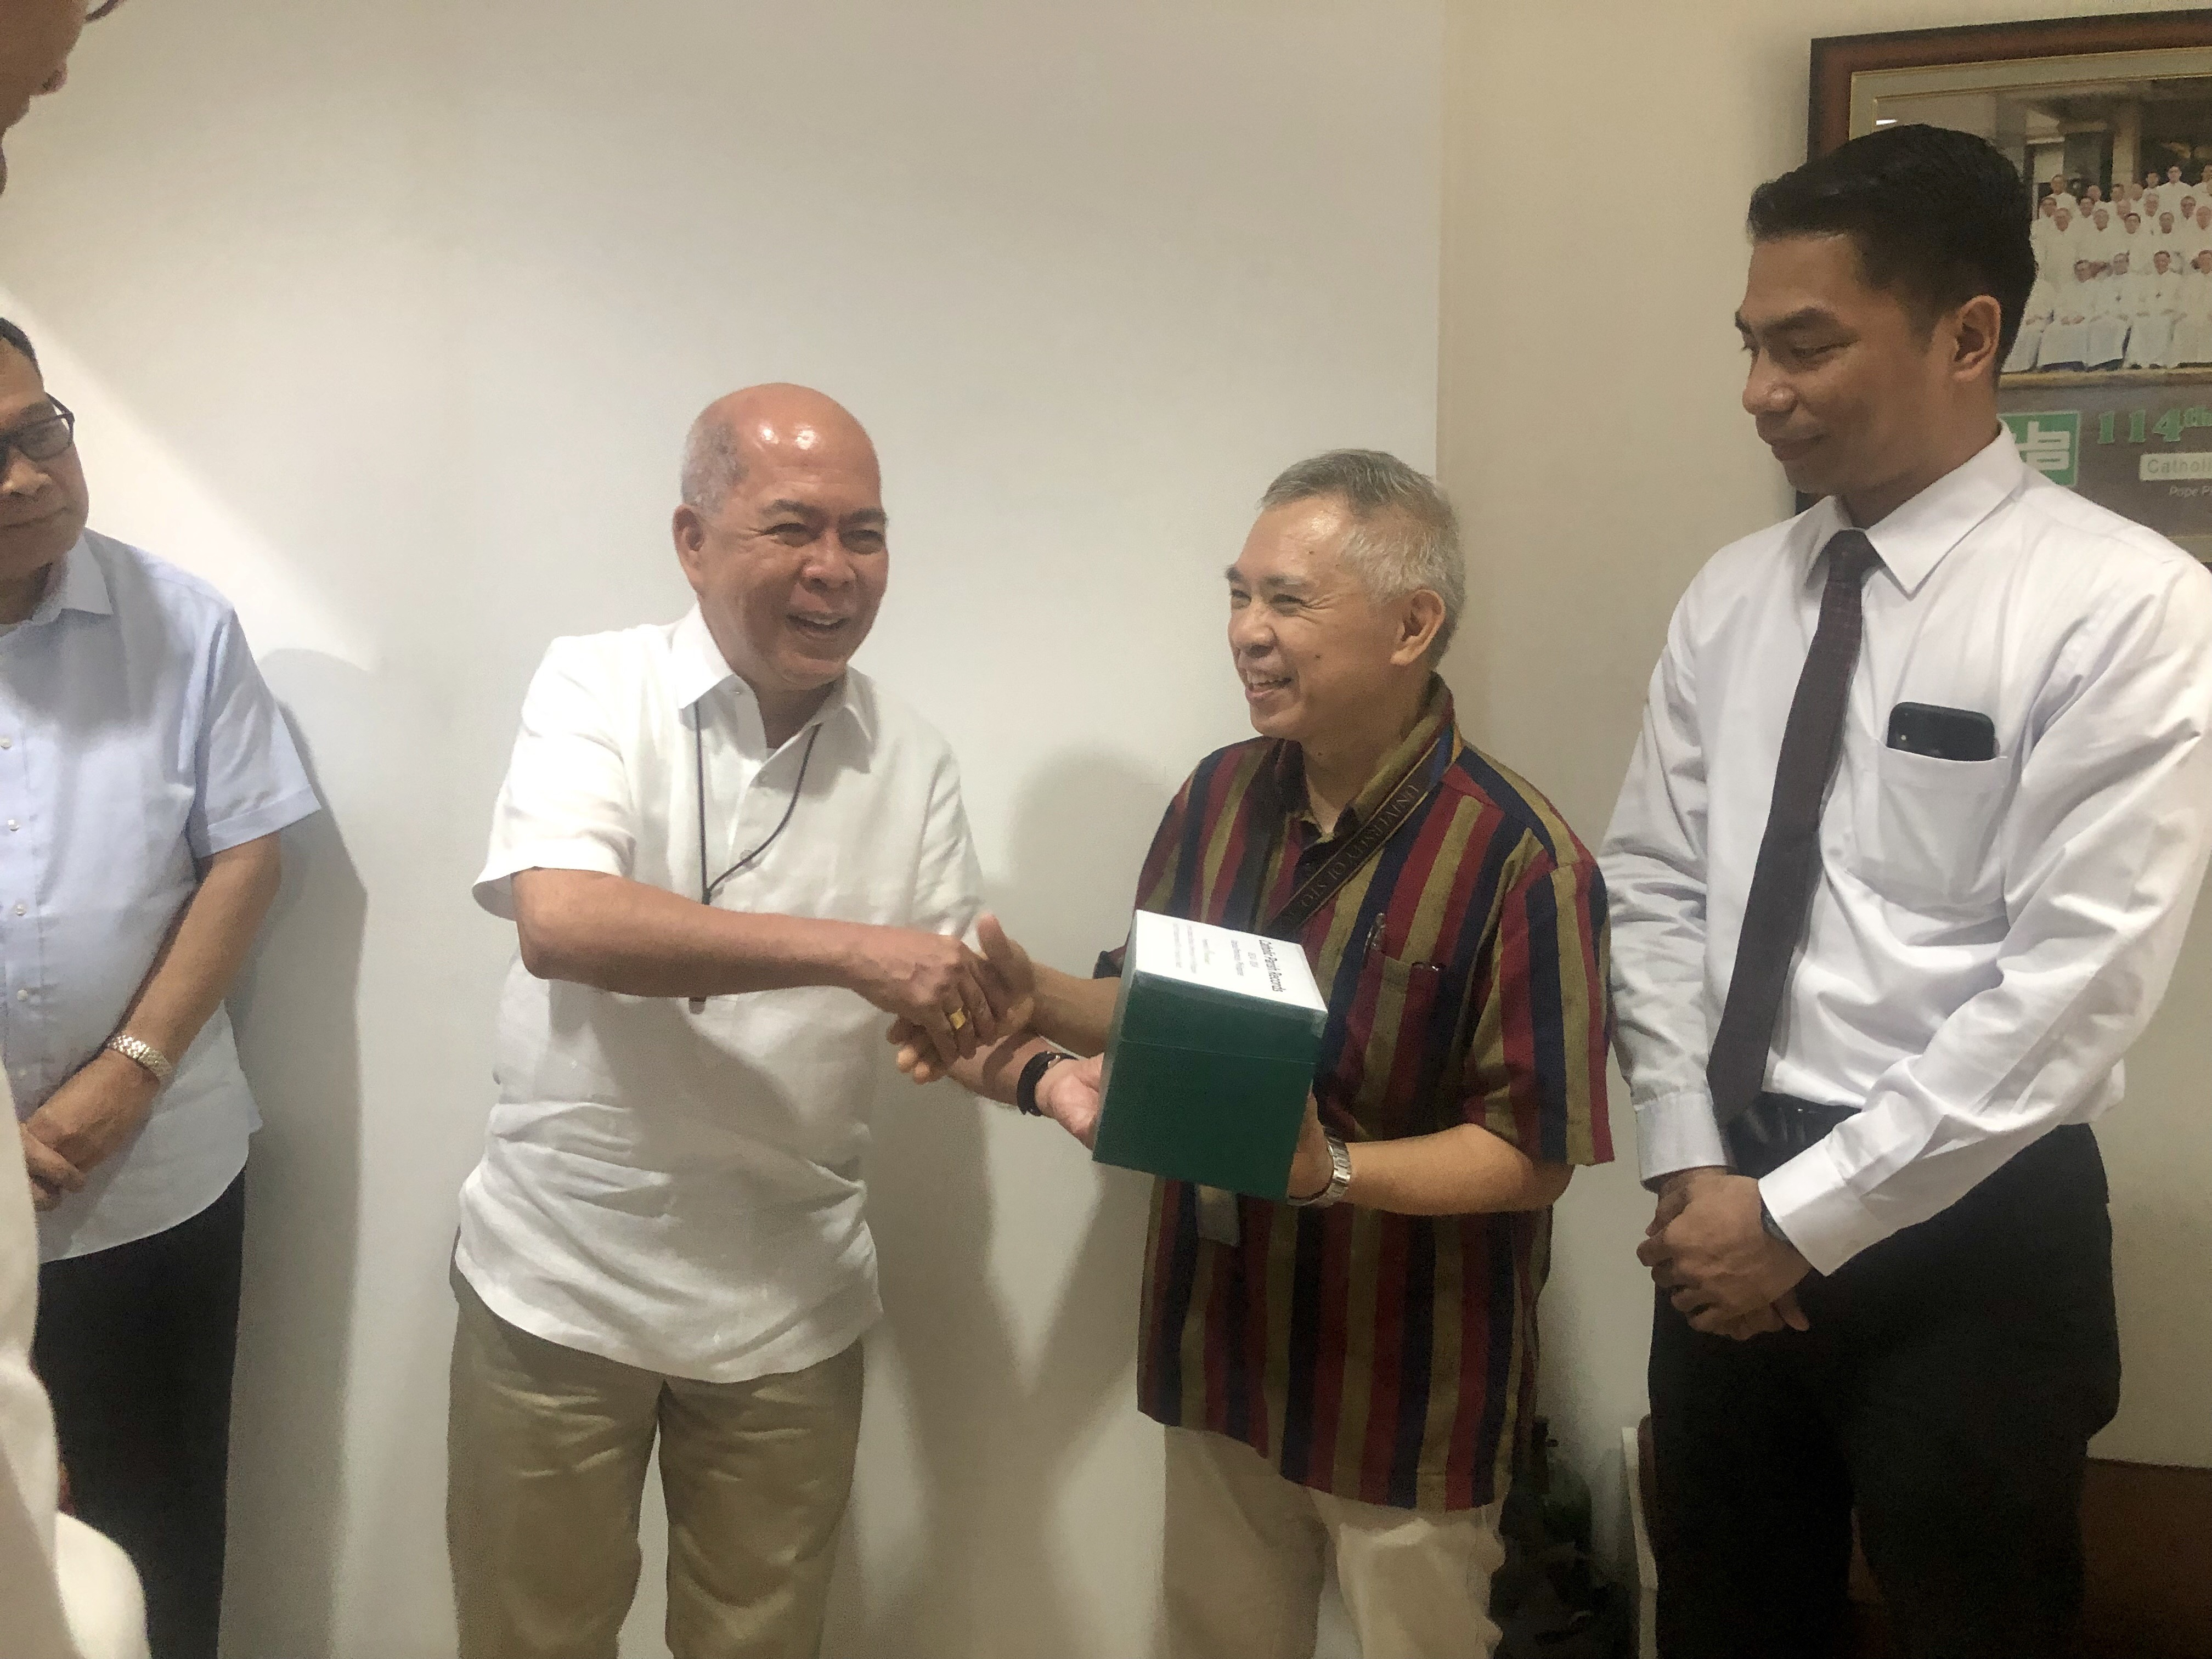 His Excellency, Archbishop Romulo Valles, turns over hard drives containing a collection of 14 million images to Archivist Professor Prof. Regalado Trota Jose of the Archives of the University of Santo Tomas (AUST), where the records will be stored.